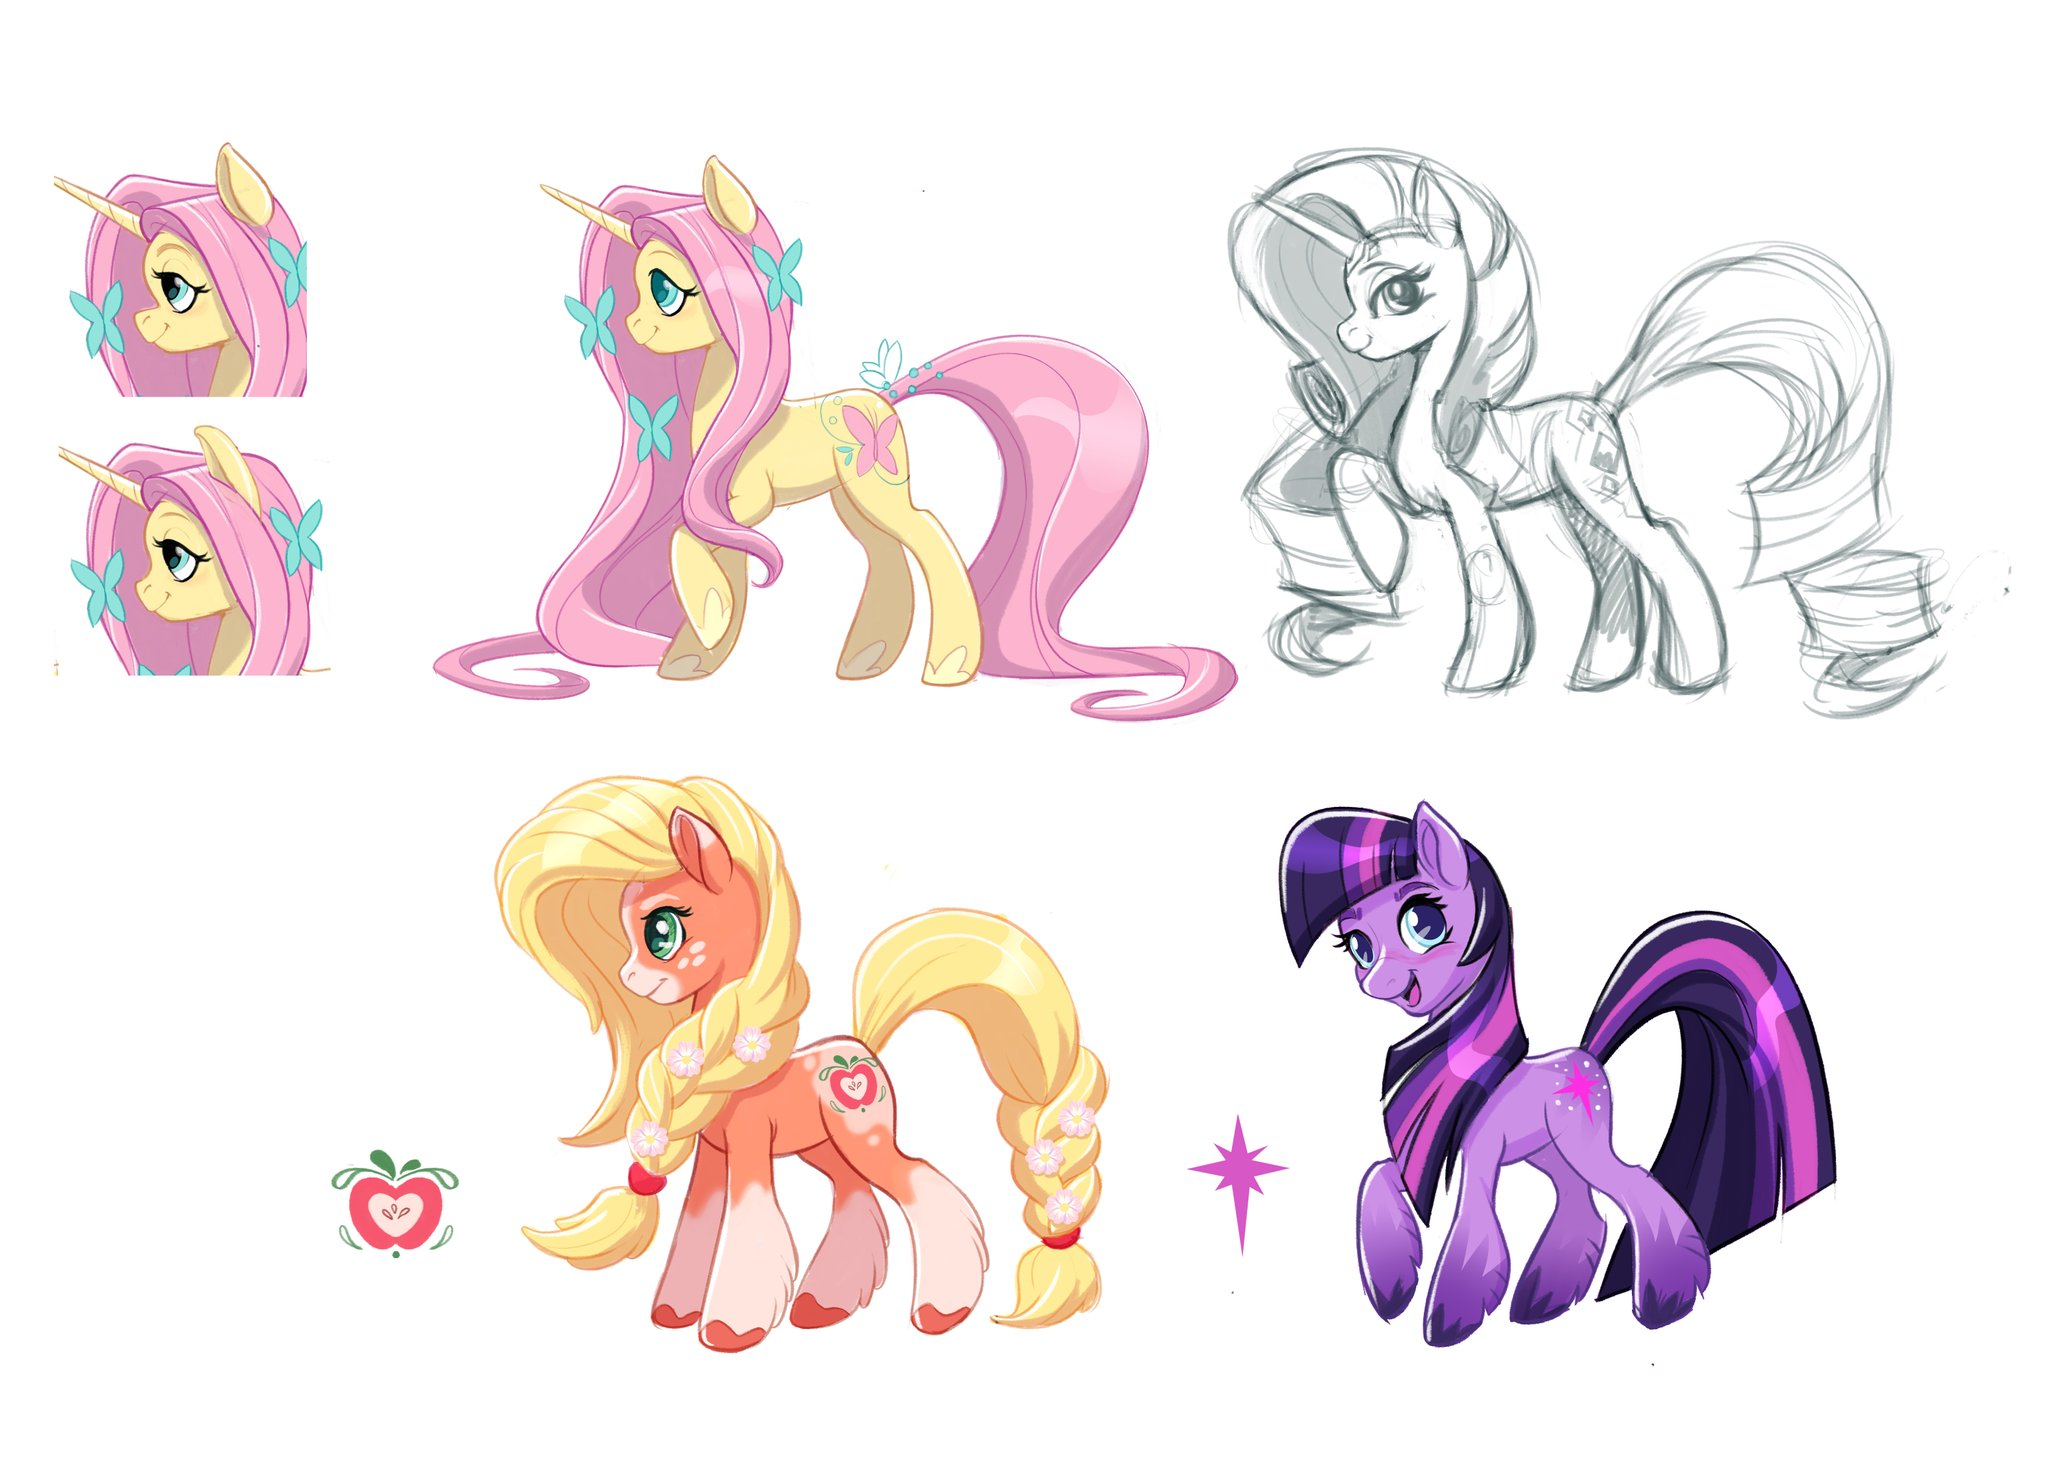 G5 redesigns | My Little Pony: Friendship is Magic | Know